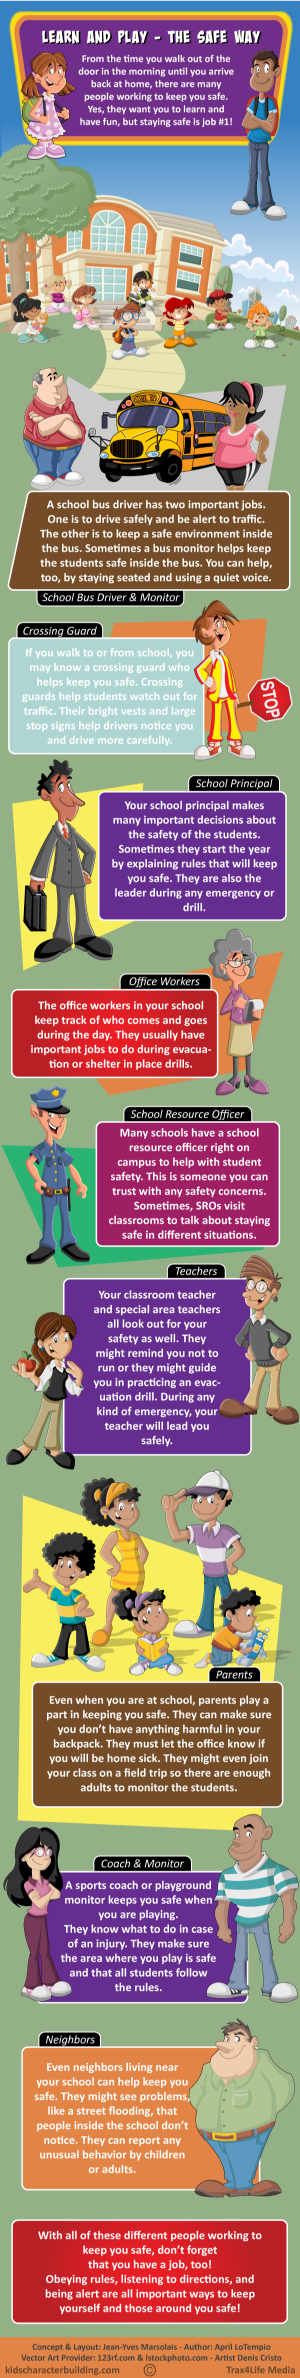 School Safety Roles Info graphic Small